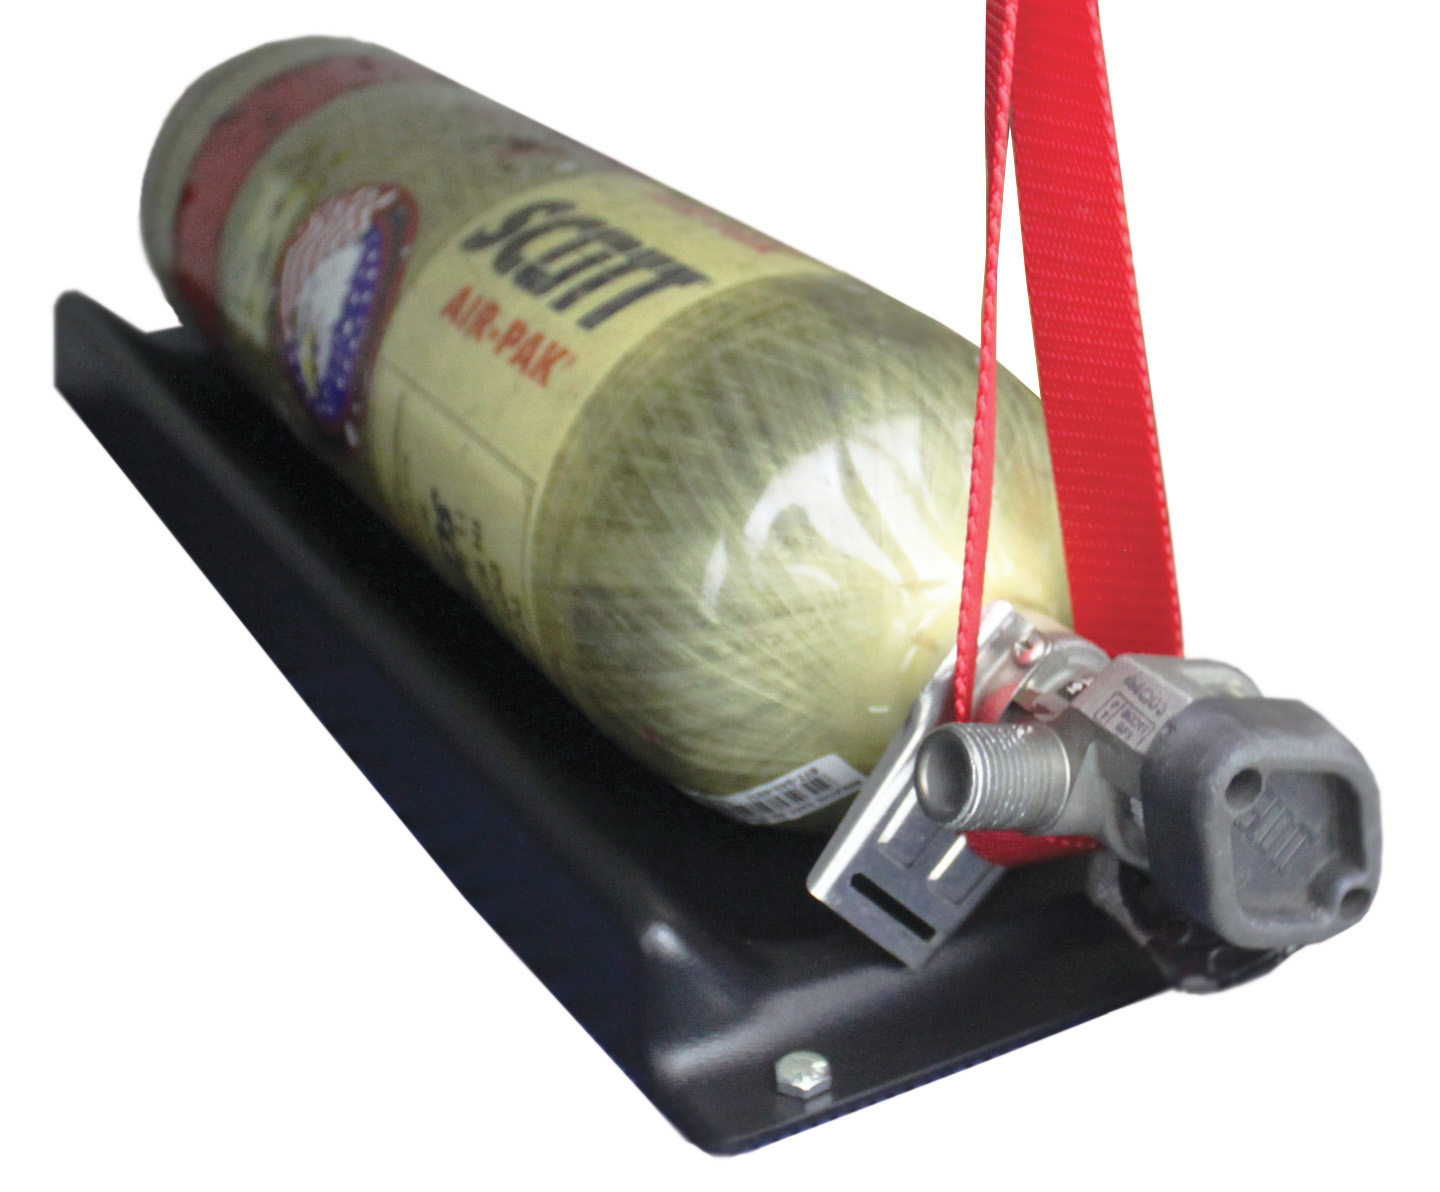 Plastic Air Cylinder & Extinguisher Cradle with Valve Strap